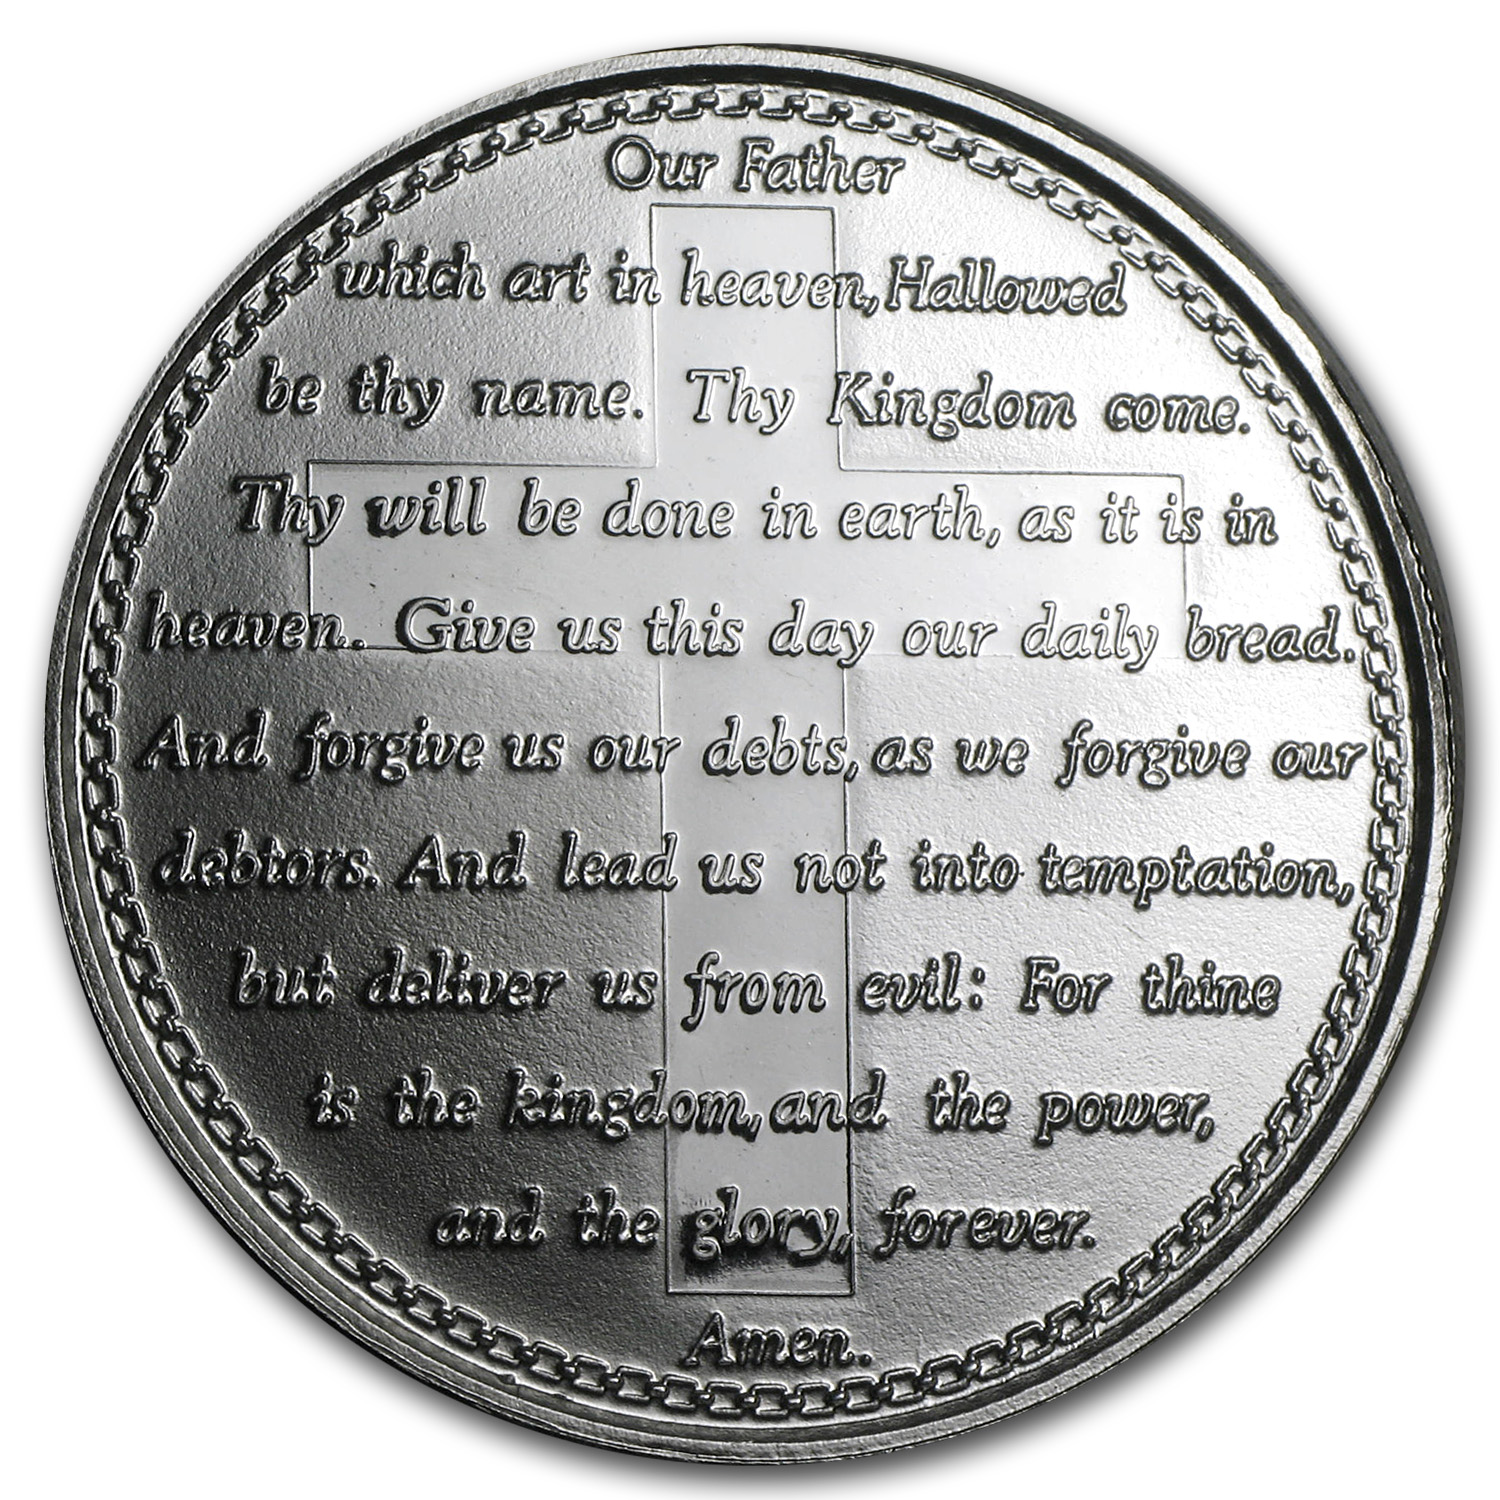 1 oz Silver Rounds - Lord's Prayer (w/Box & Capsule)